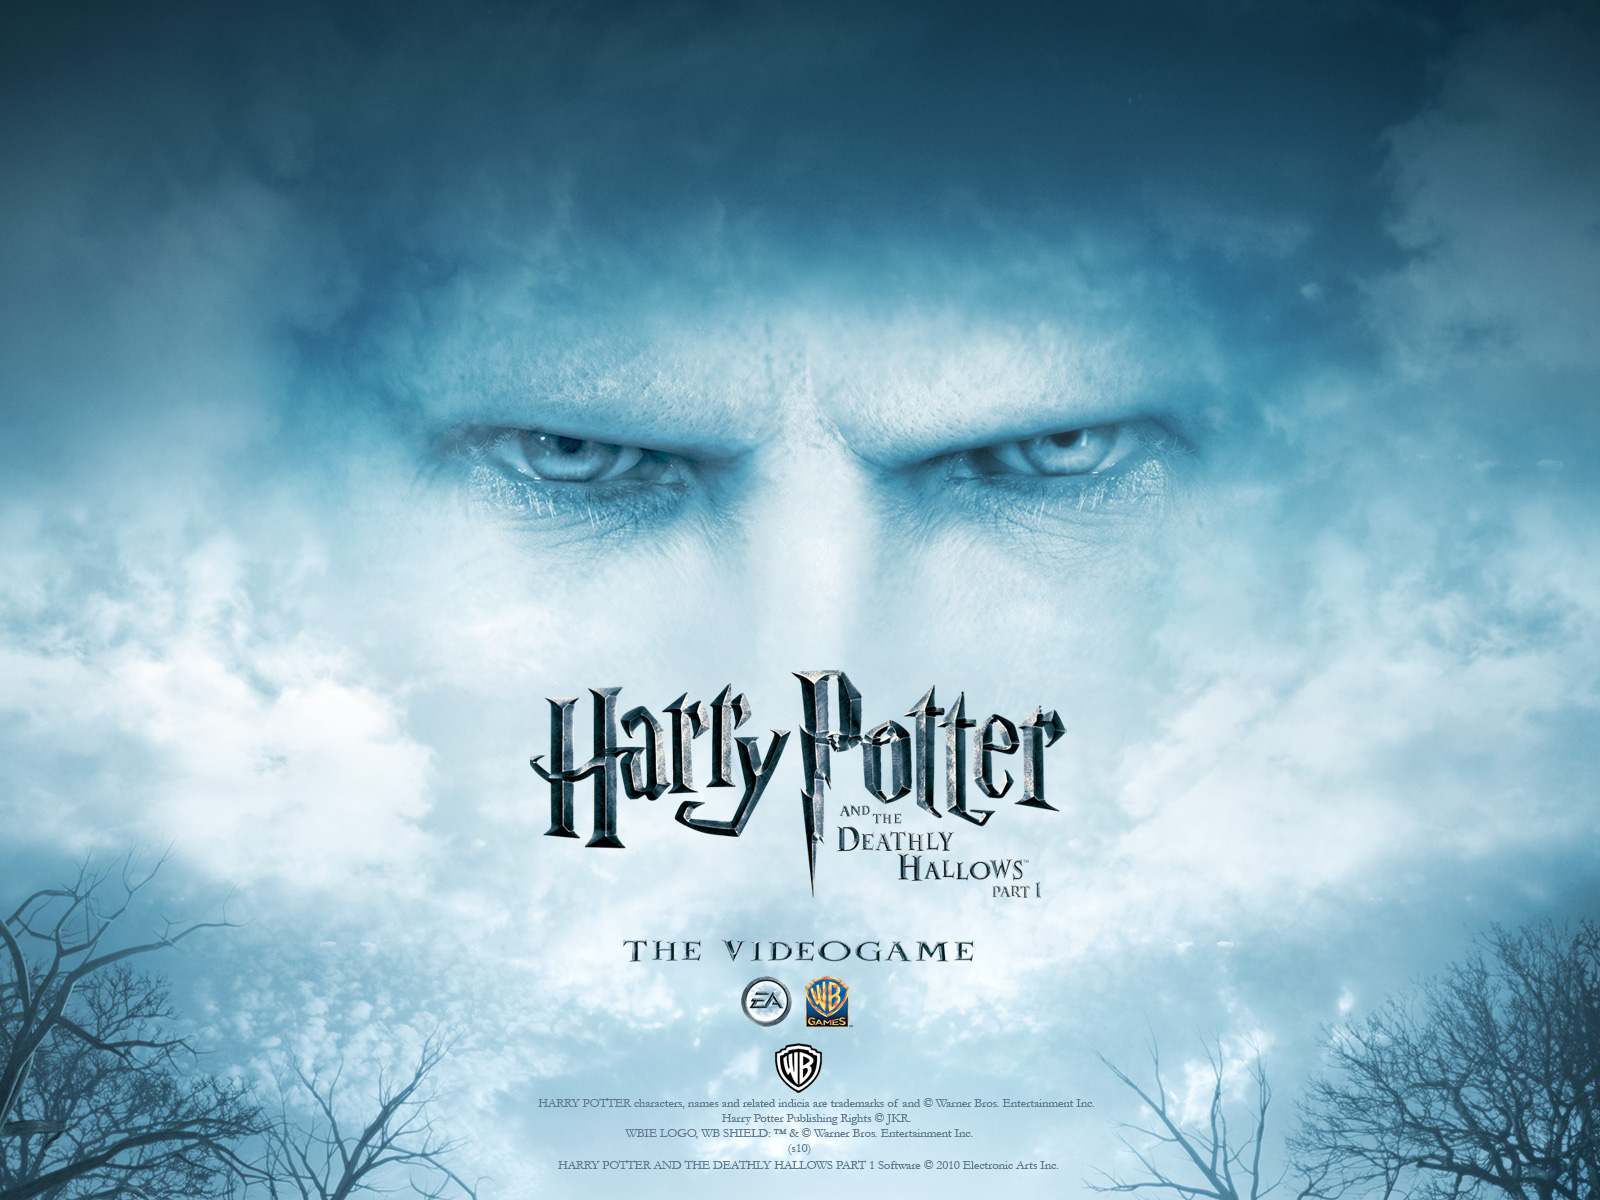 Dragon Harry Potter And The Deathly Hallows Part 2 Wallpapers